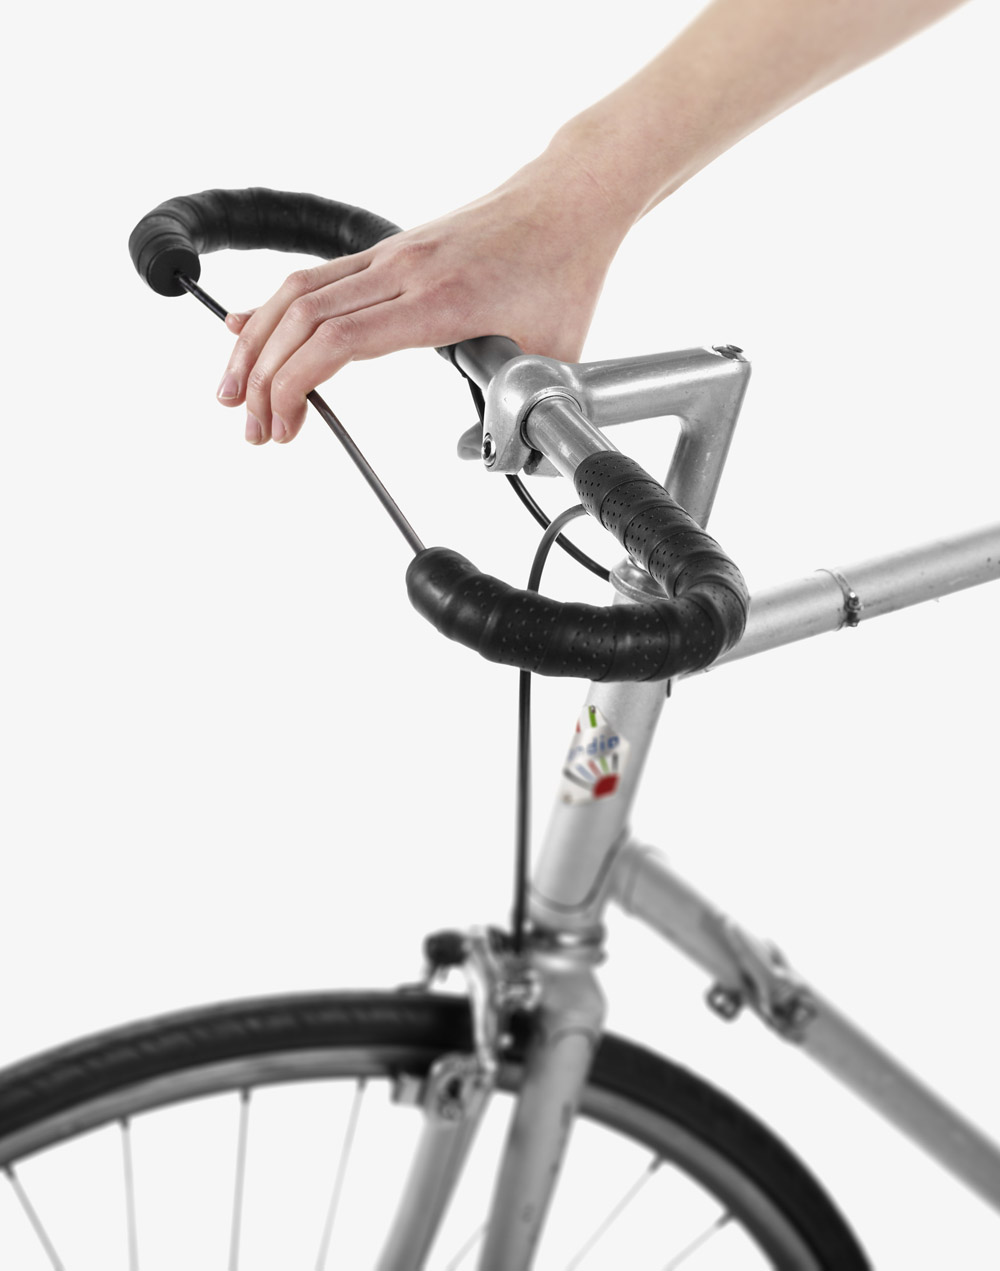 15 Coolest and Most Innovative Bike Gadgets